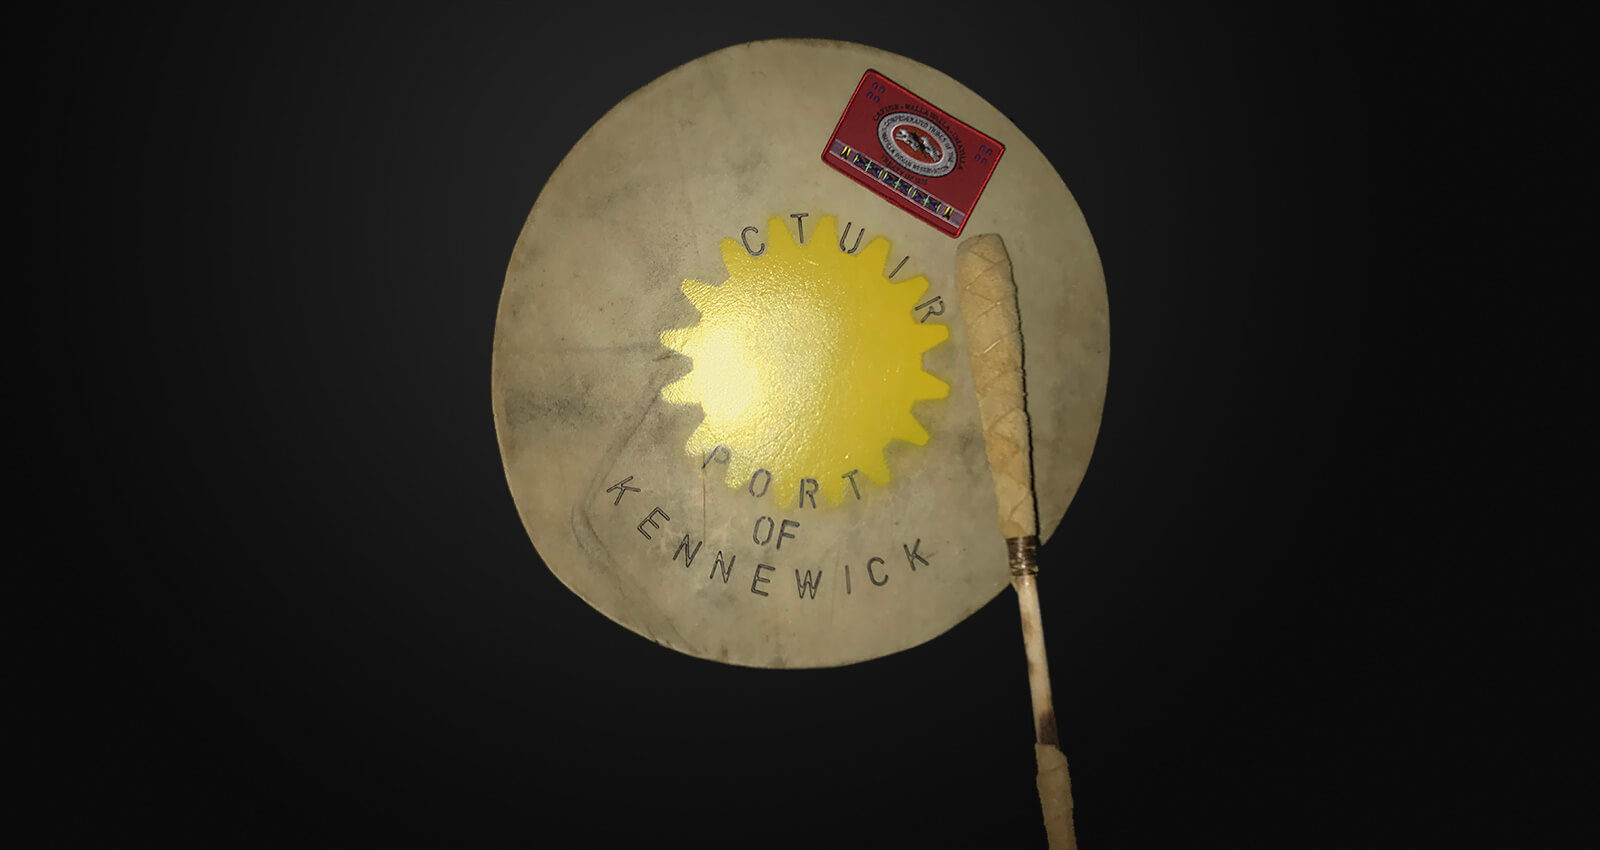 Confederated Tribes of the Umatilla Indian Reservation ceremonial drum.